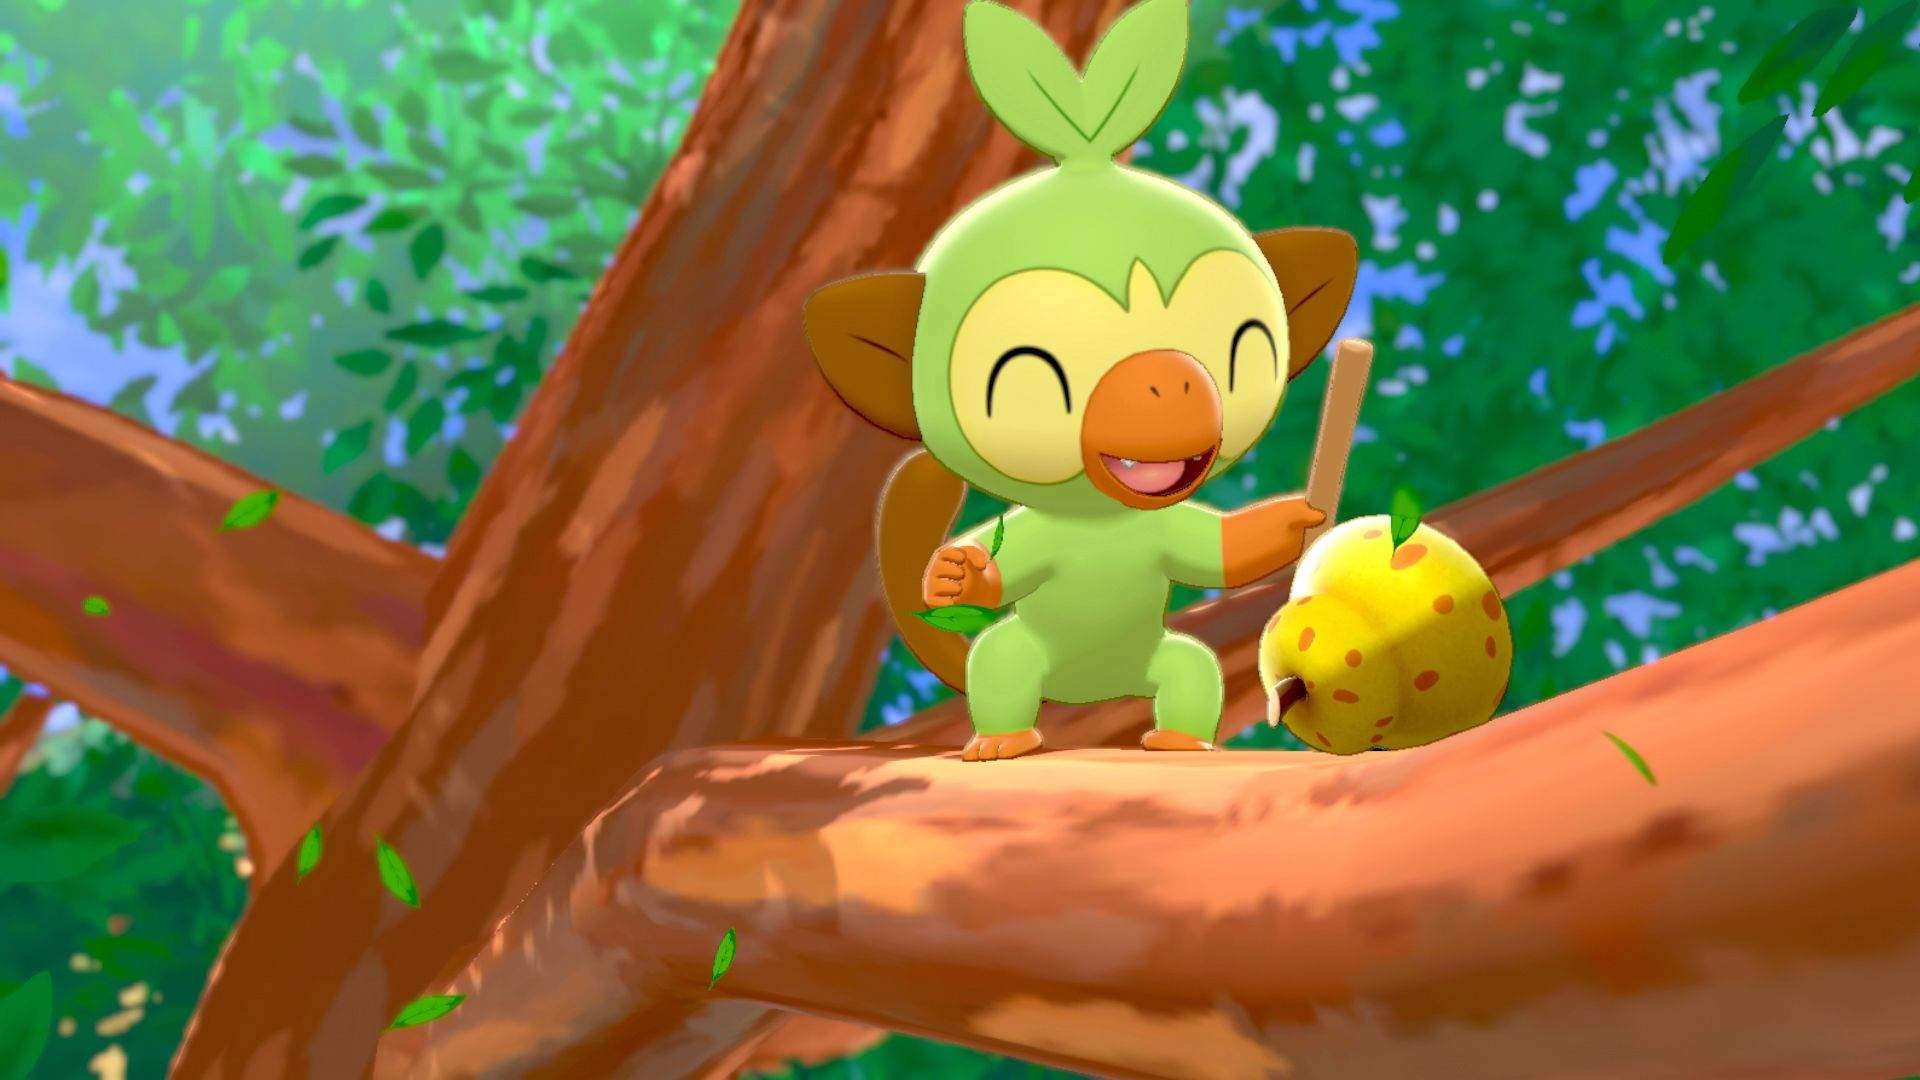 Grookey Pokemon Sword Shield Marriland Com Check out our grookey selection for the very best in unique or custom, handmade pieces from our shops. grookey pokemon sword shield